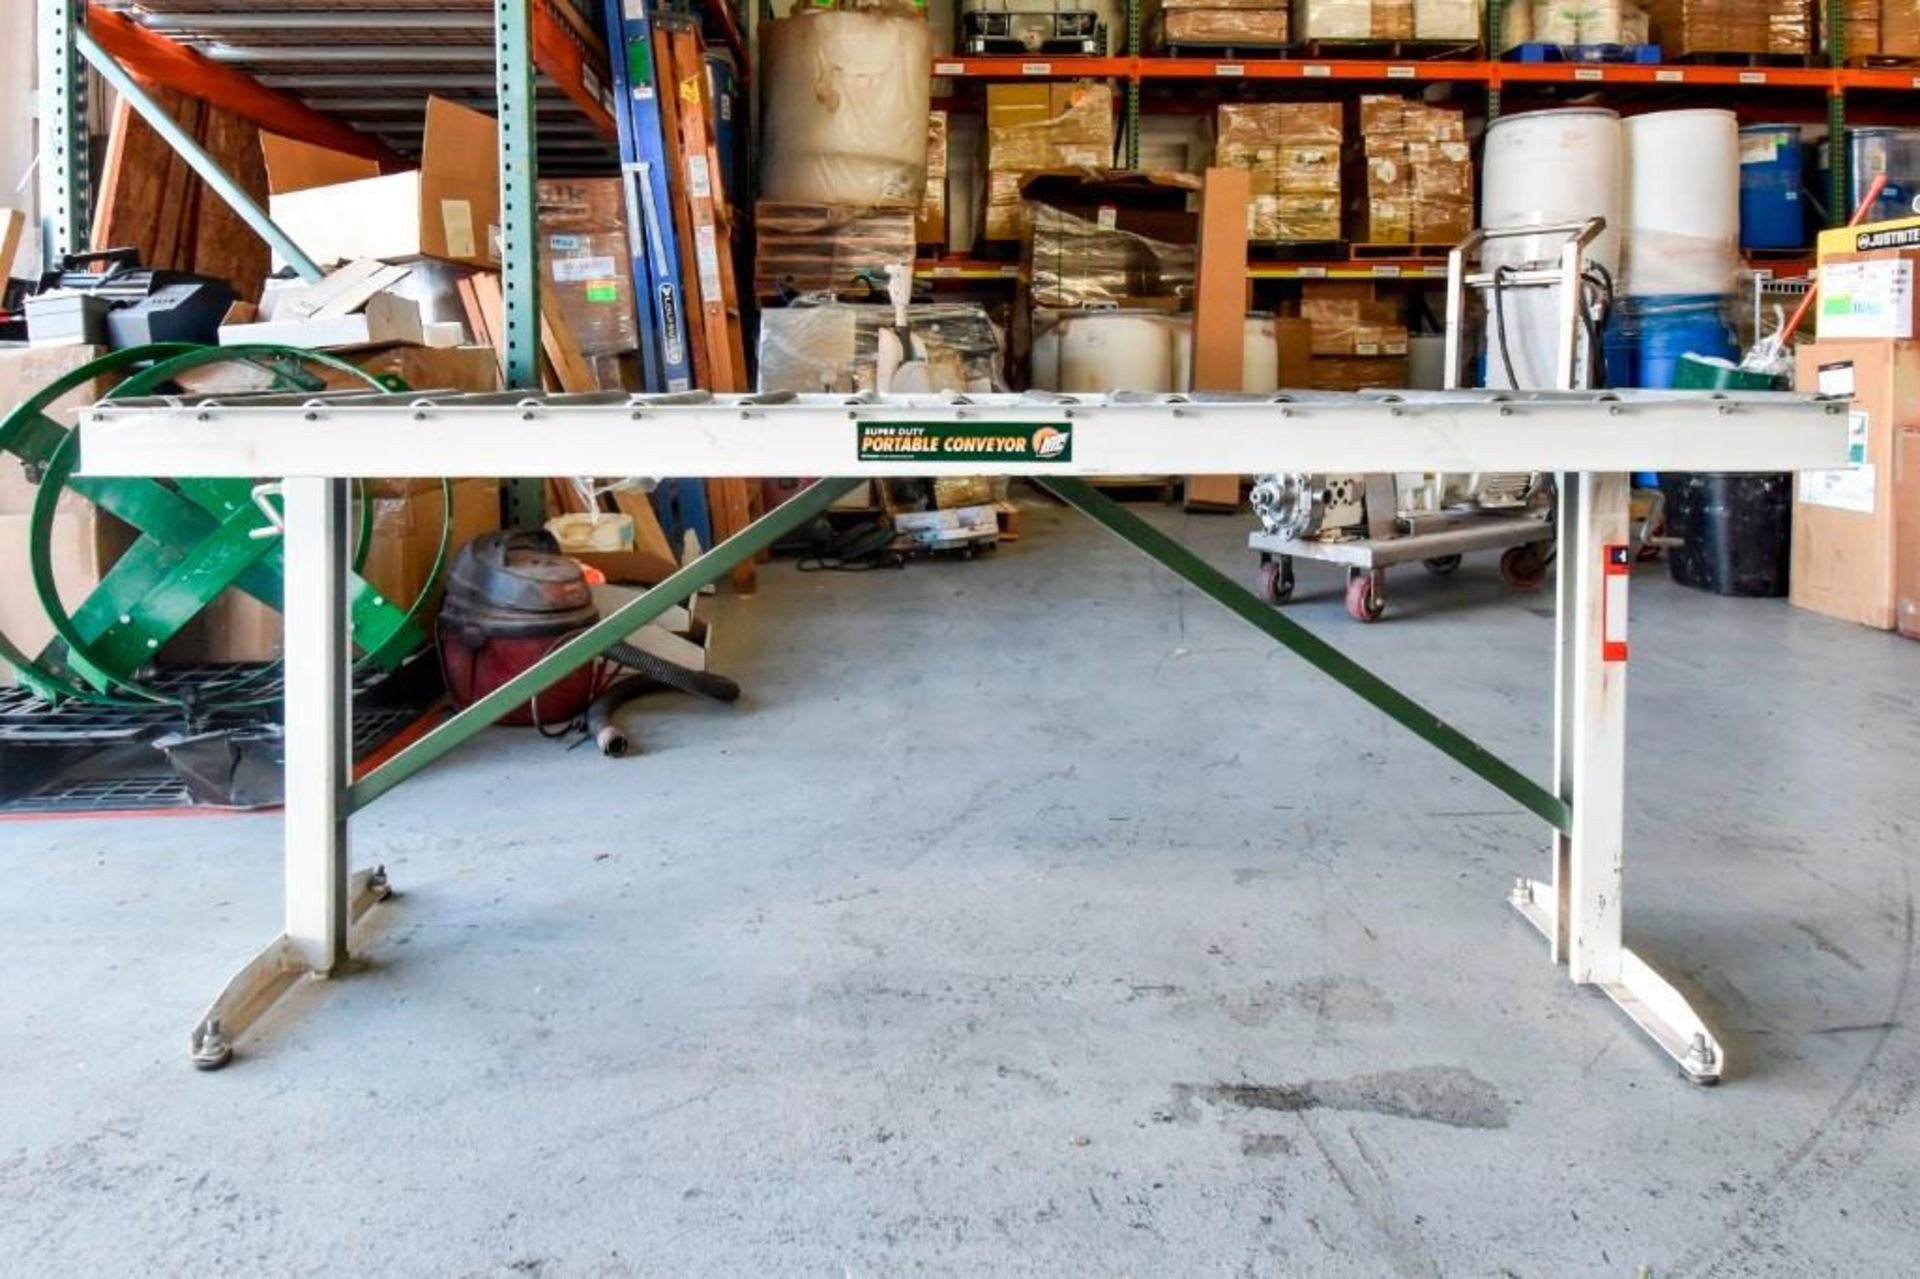 Super Duty Portable Folding Roller Conveyor 5'7'' - Image 3 of 11